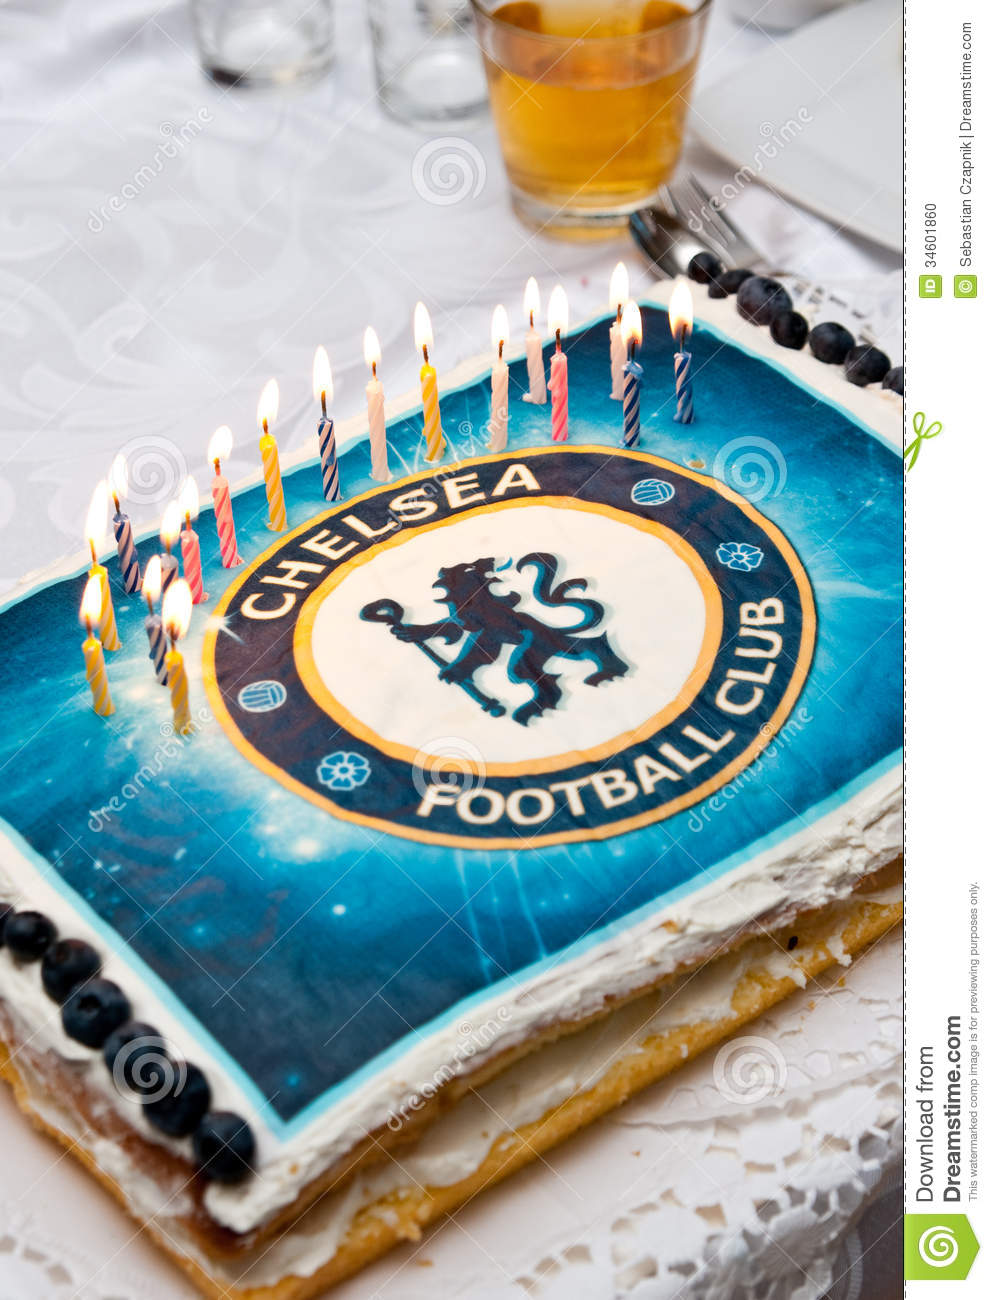 Birthday Cake For Chelsea Fan Editorial Image Image